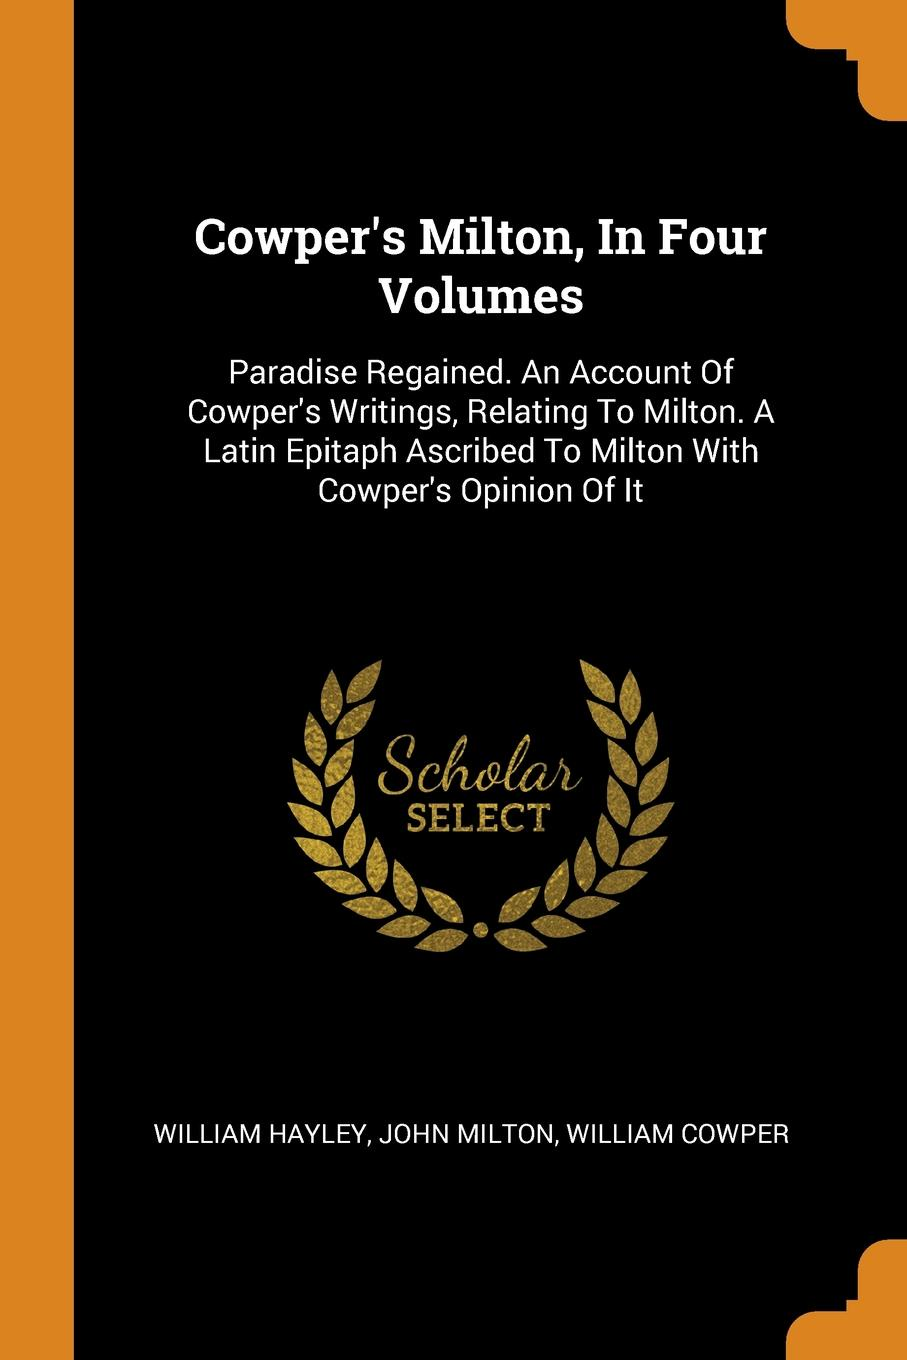 William Hayley, John Milton, William Cowper Cowper.s Milton, In Four Volumes. Paradise Regained. An Account Of Cowper.s Writings, Relating To Milton. A Latin Epitaph Ascribed To Milton With Cowper.s Opinion Of It